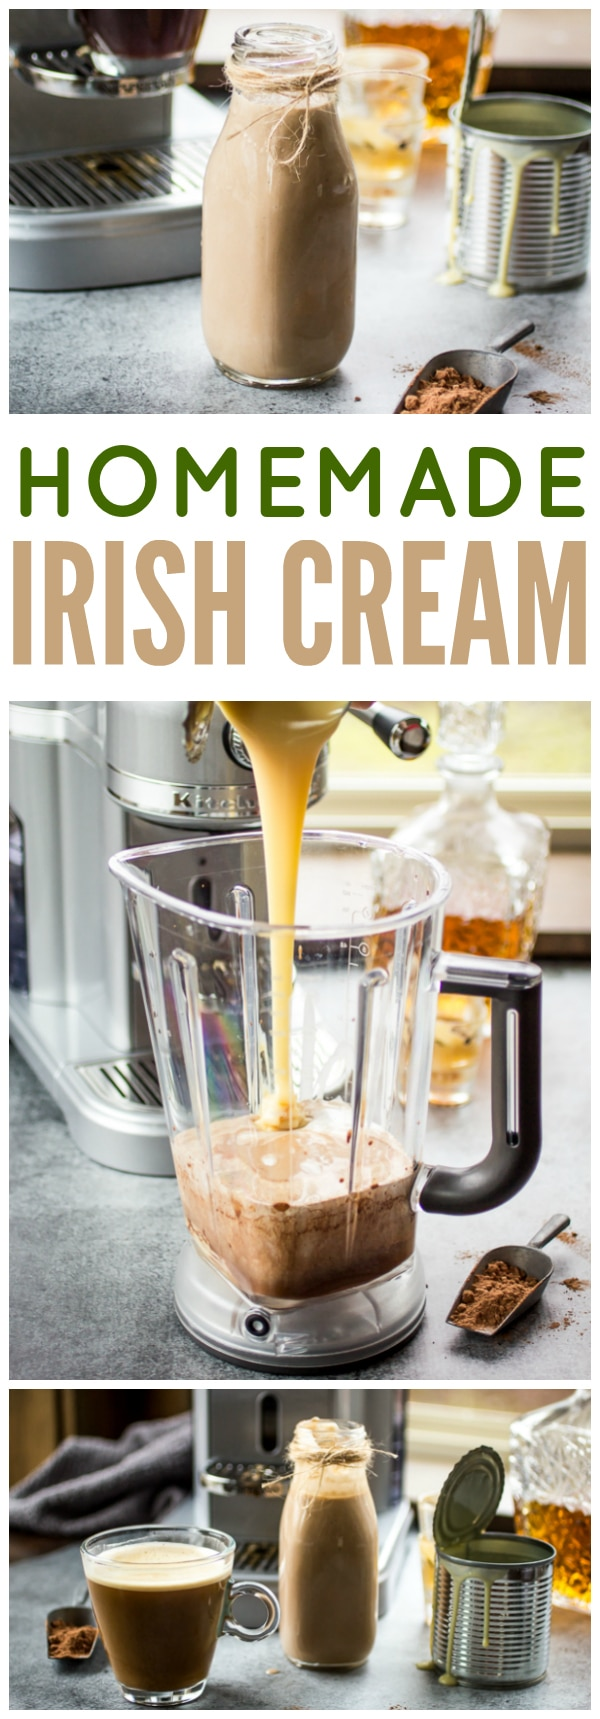 The best way to perk up any cup of coffee - homemade Irish Cream!